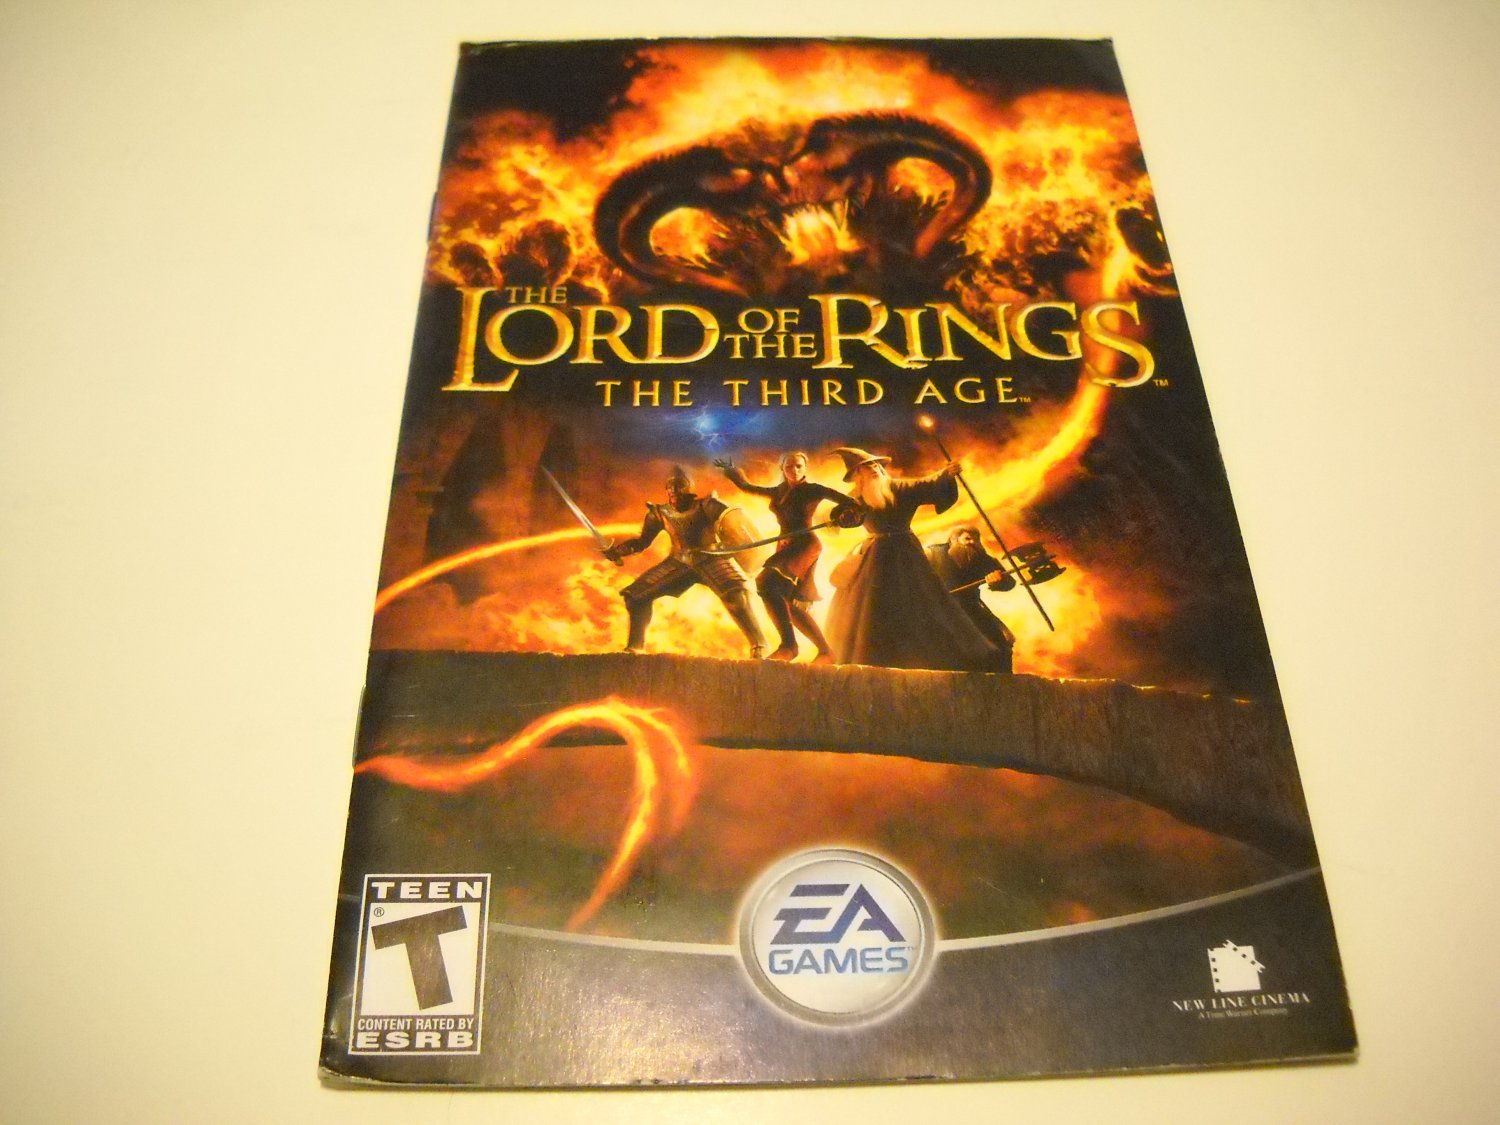 Manual ONLY ~  for The Lord of the Rings The Third Age   Ps2